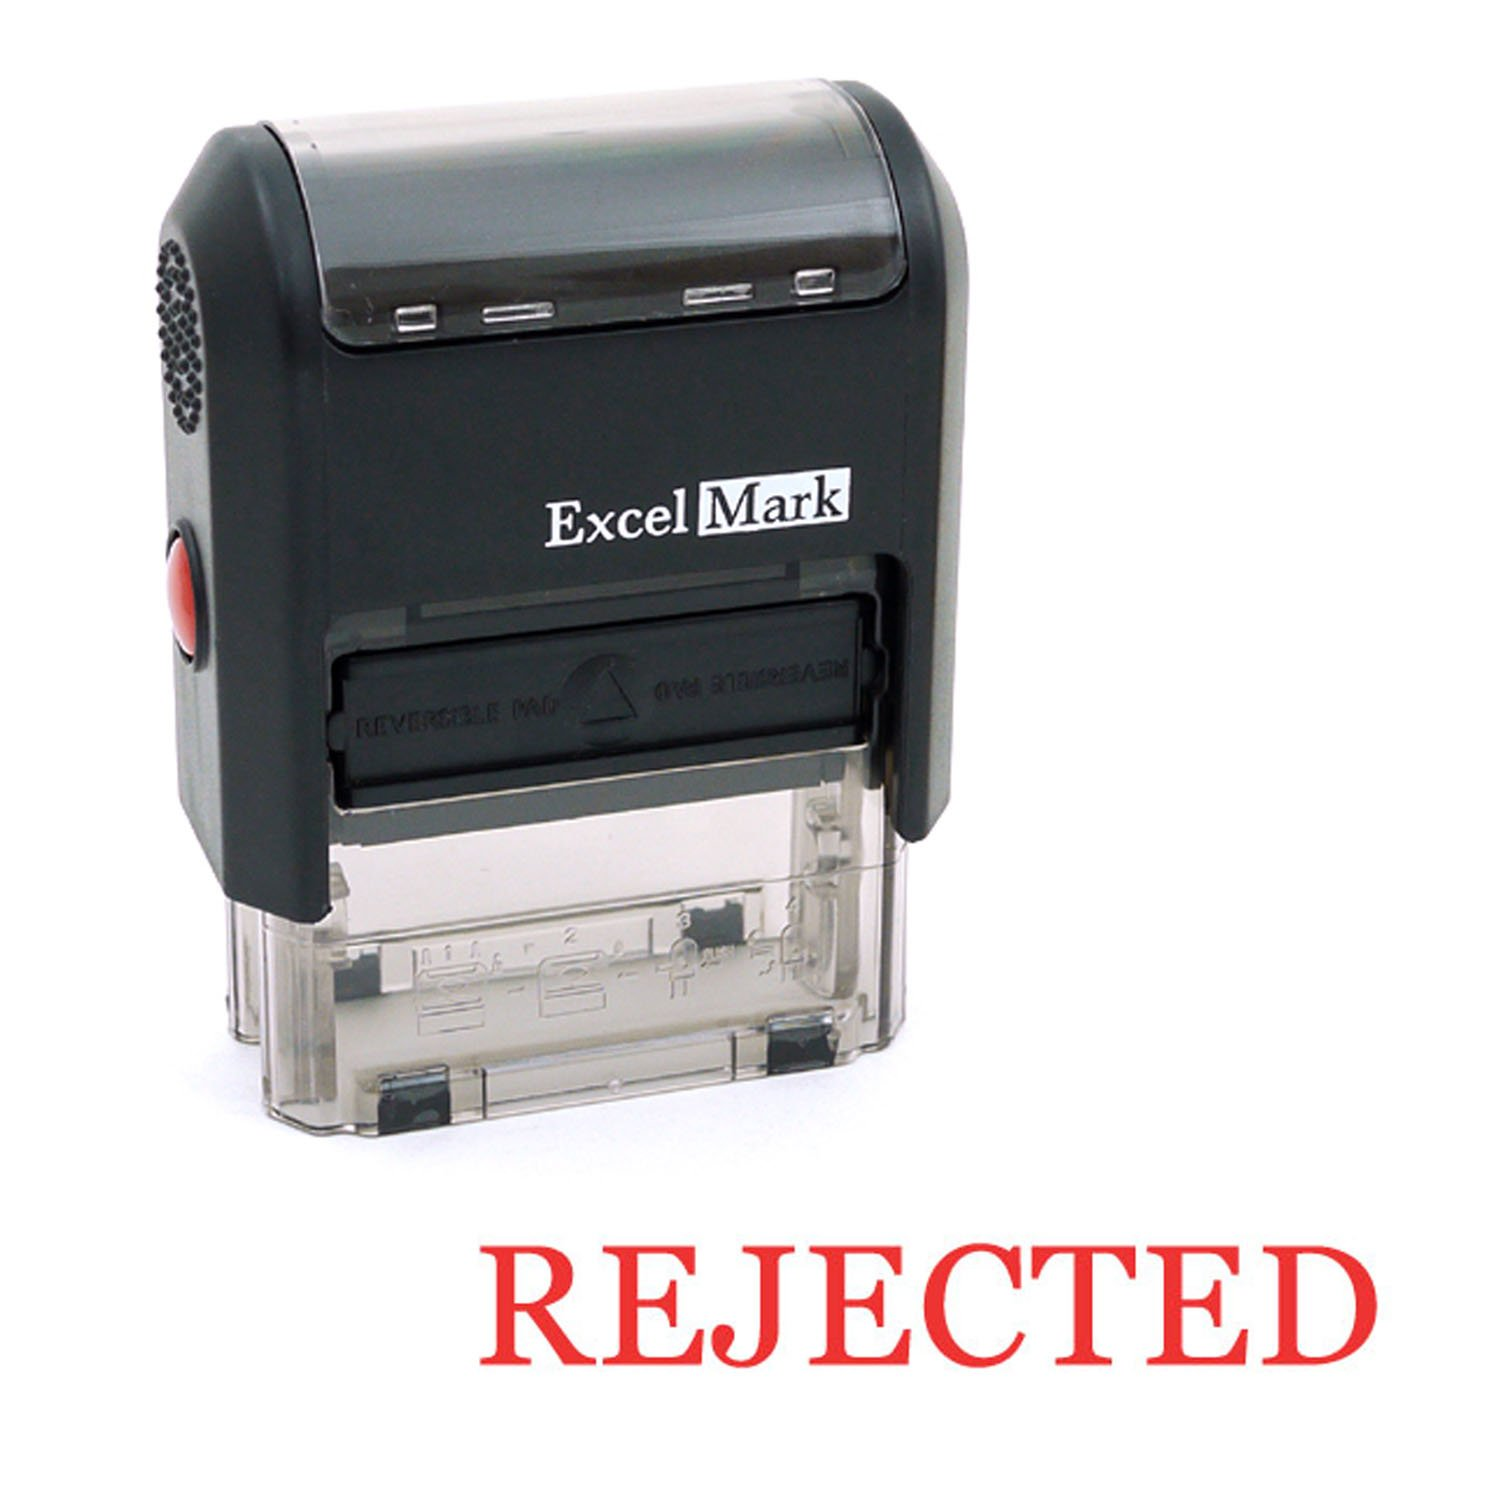 Rejected Self Inking Rubber Stamp - Red Ink (ExcelMark A1539)